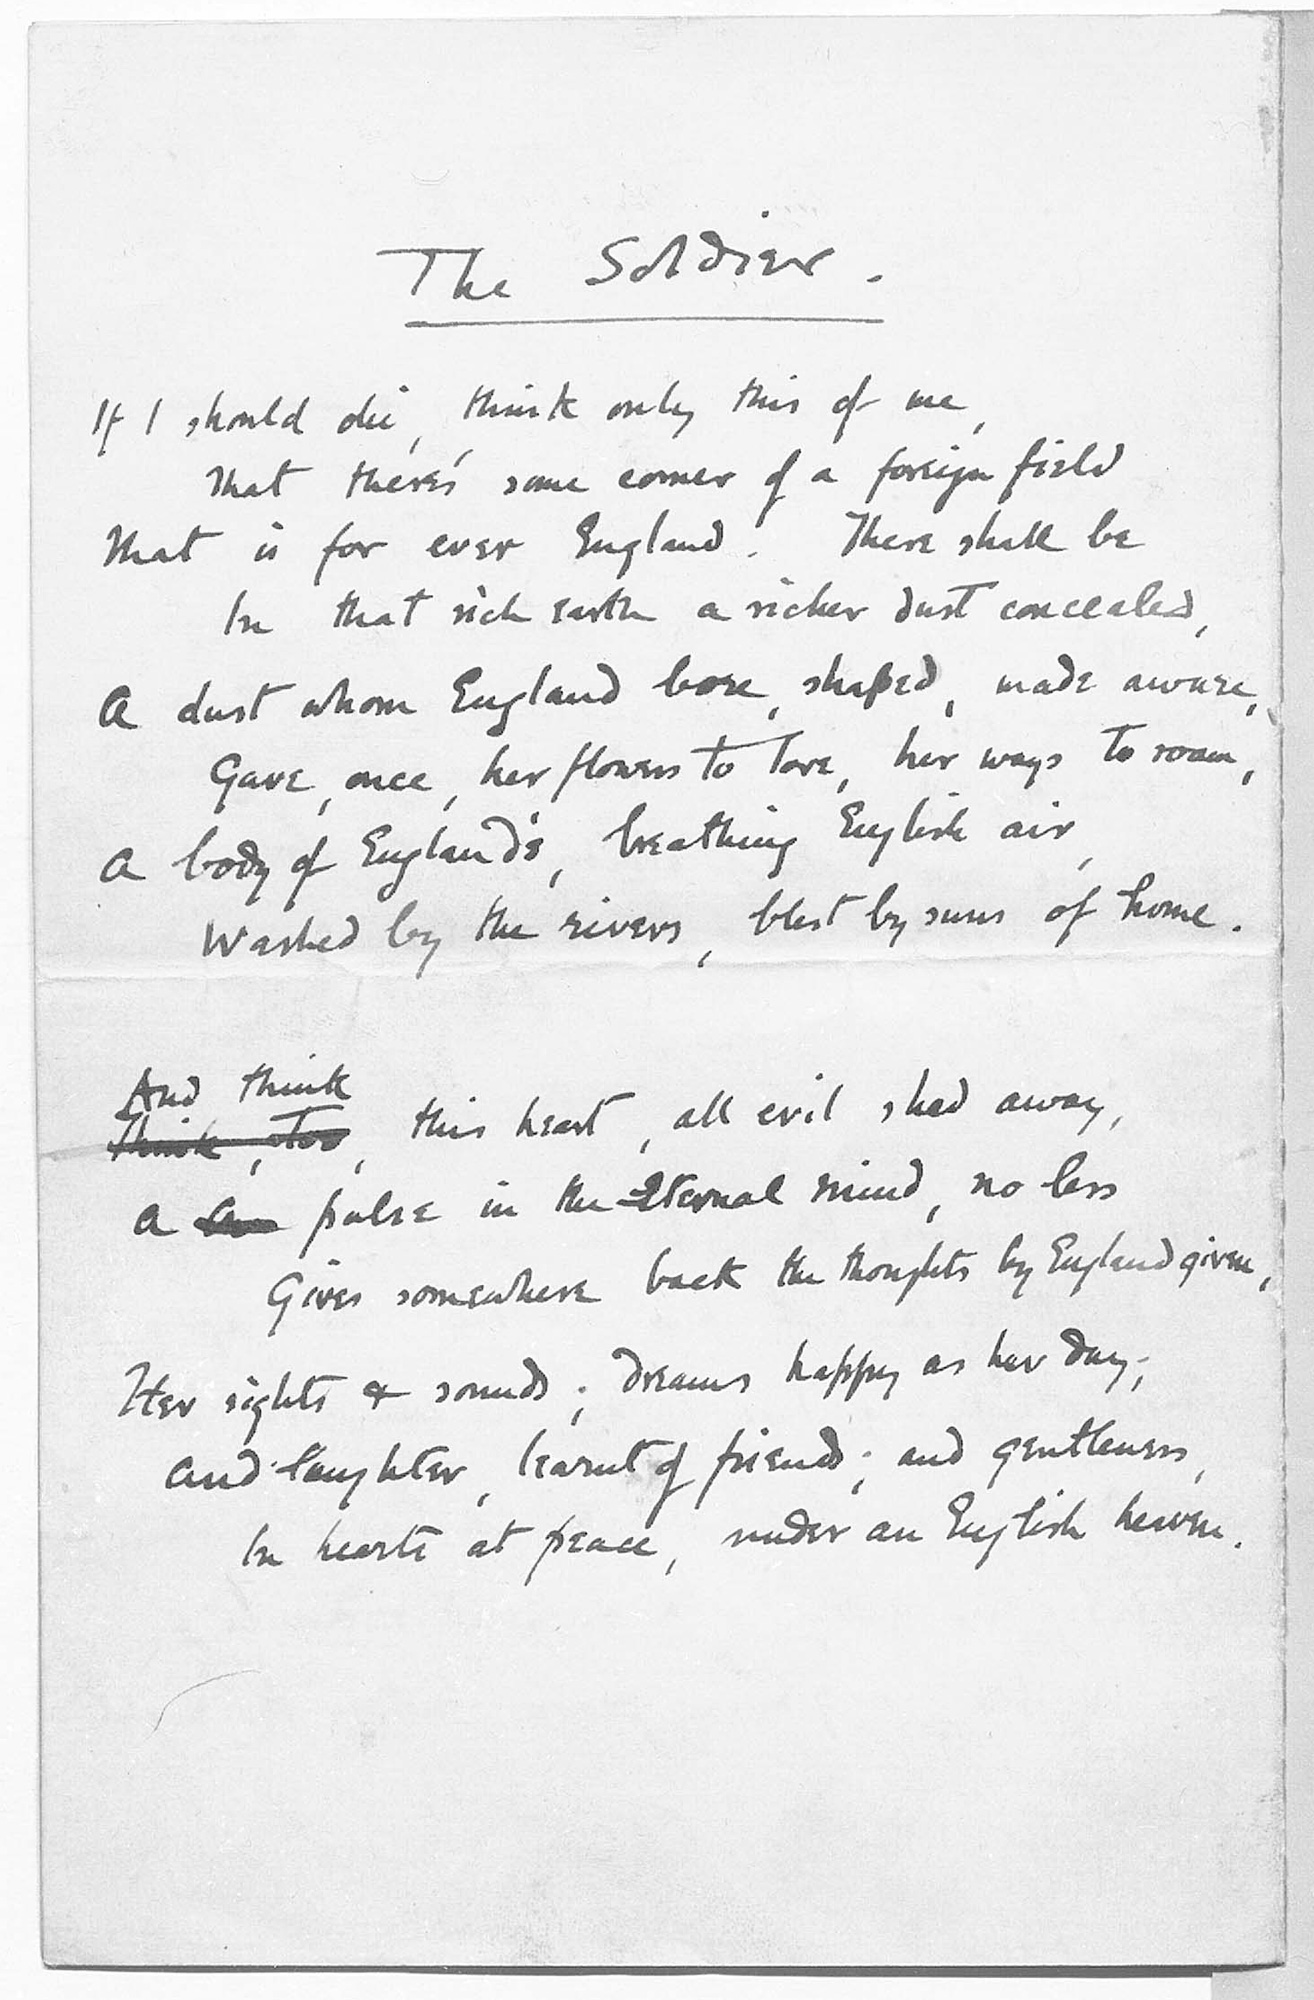 rupert brooke war poetry peace Analysis of peace by rupert brooke this is an analysis of a pro-war poem by rupert brooke, featured in the anthology, 'up the line to death' the level of analysis is what one would expect.